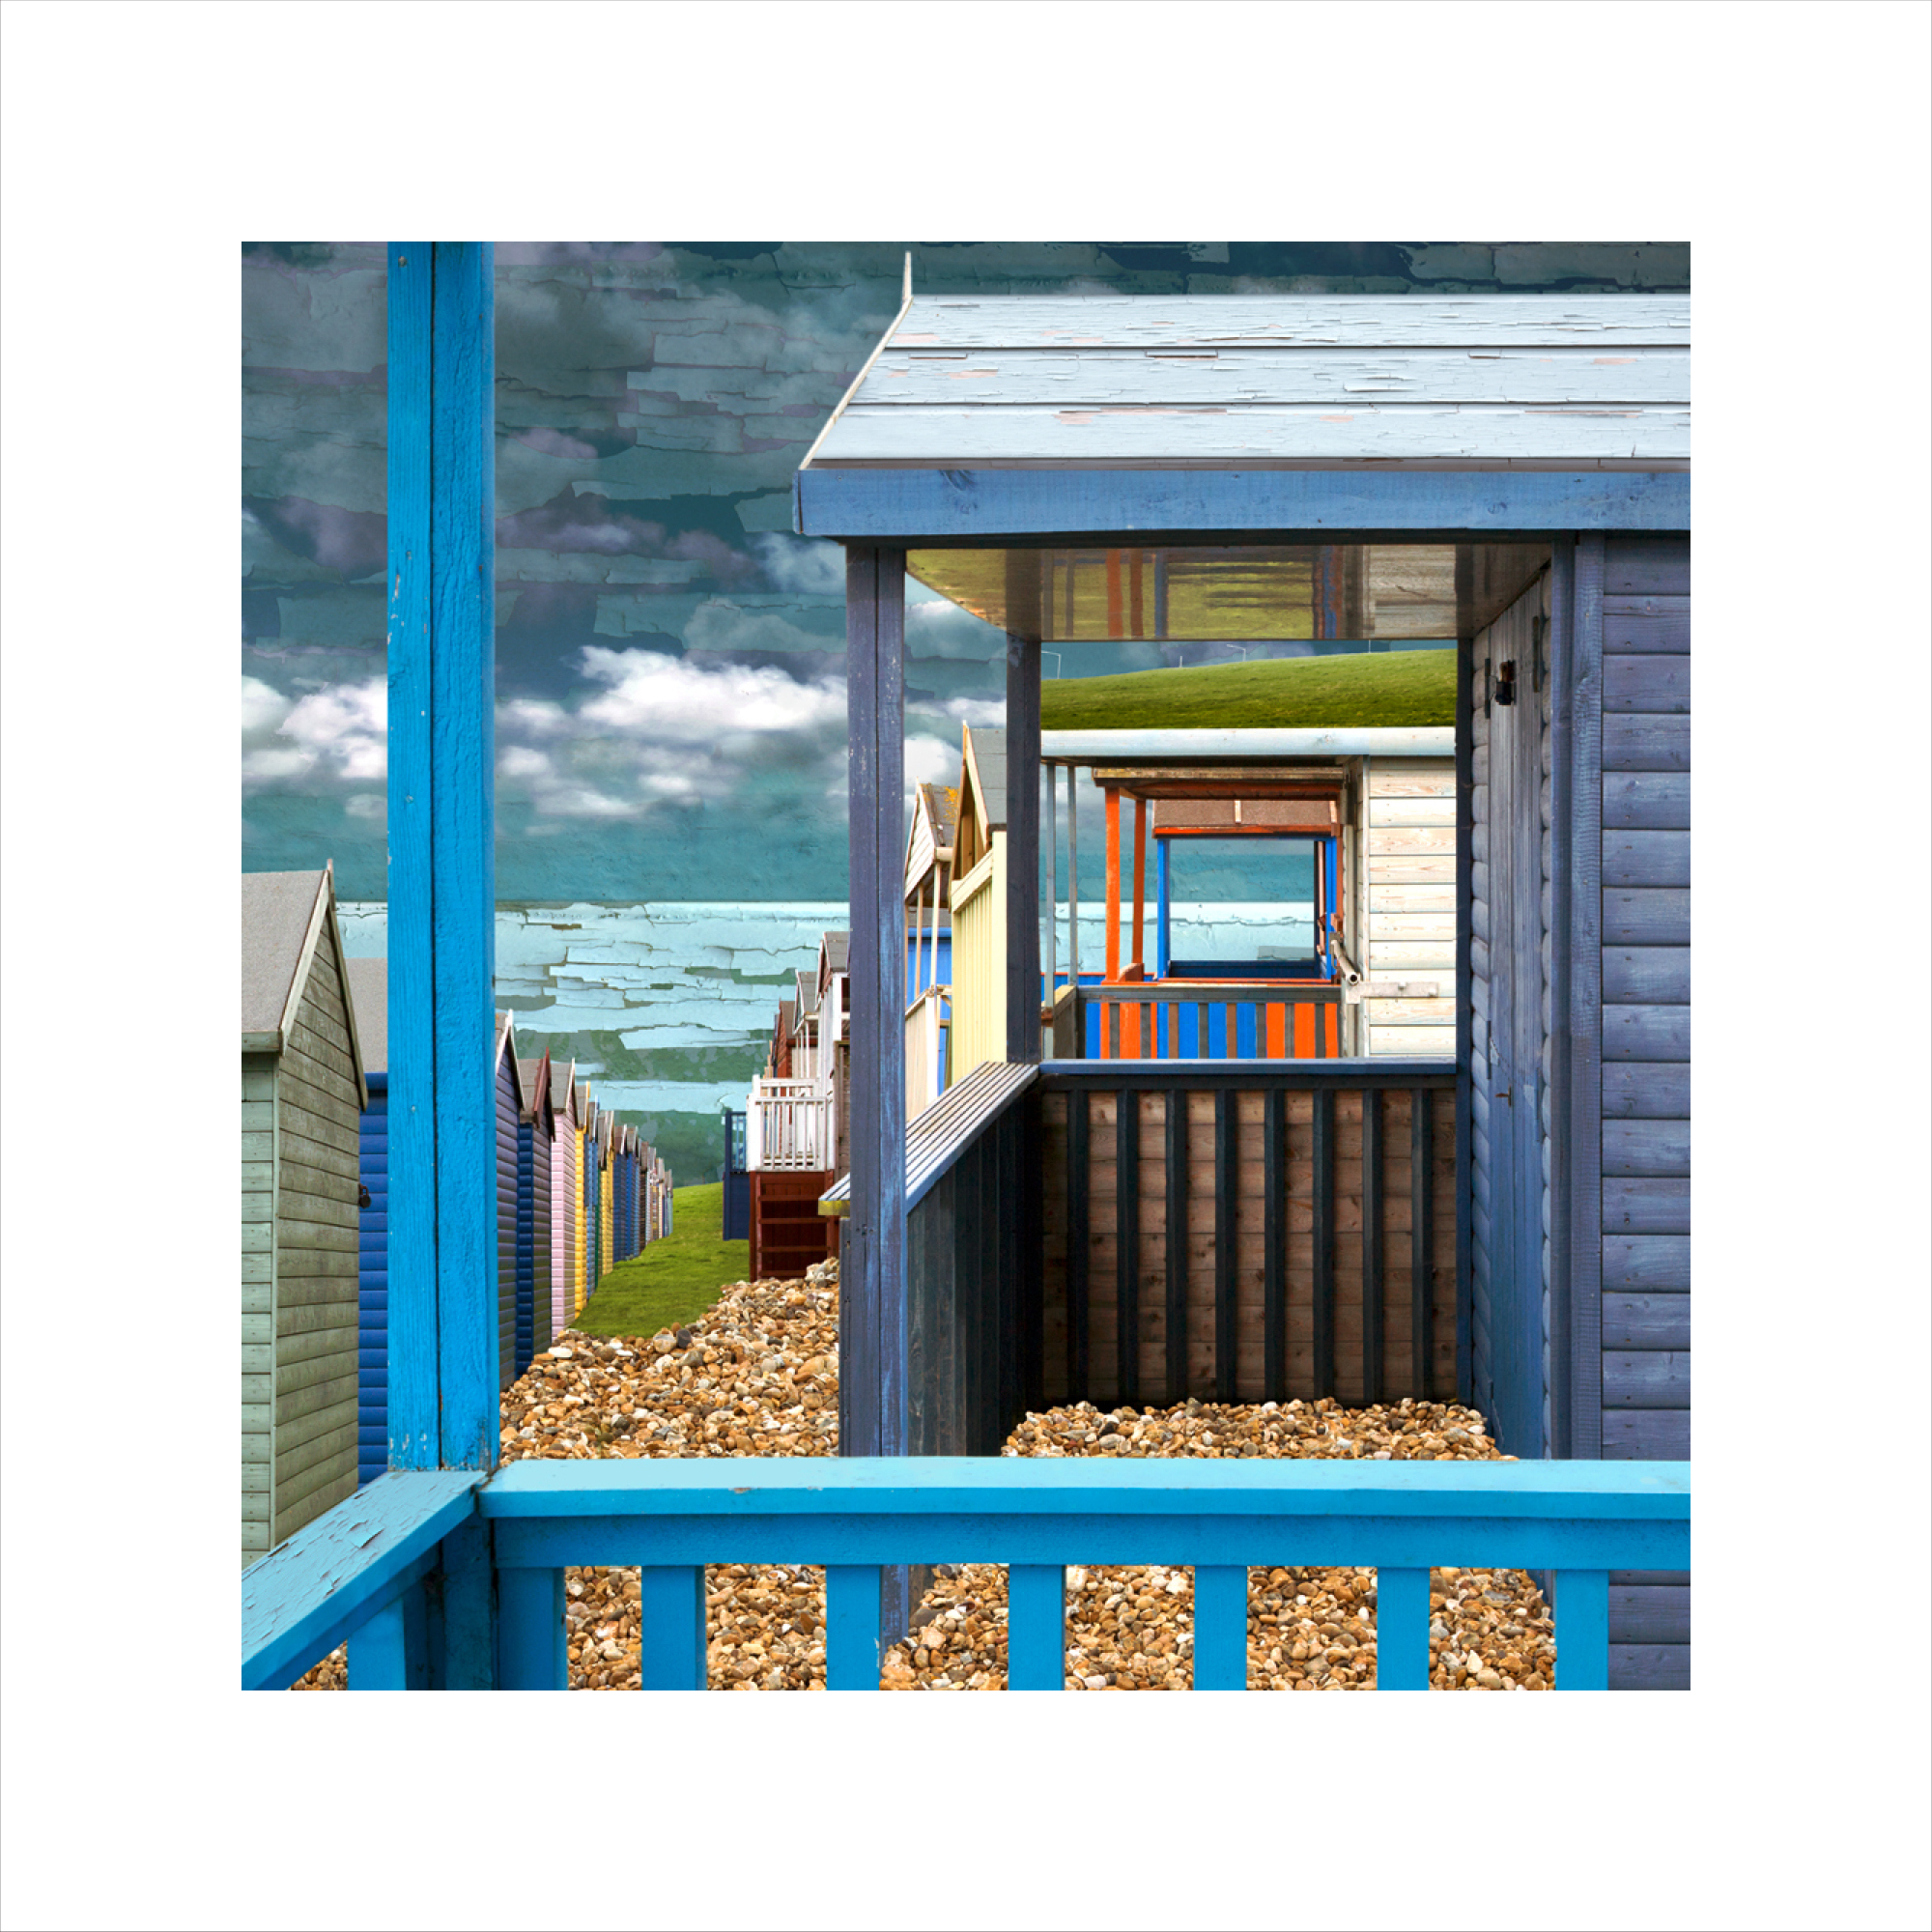 Claire Gill, Limited edition prints, digital photomontage, fine art prints, hahnemuhle, coastal art, Collect Art, seascape 44, Whitstable, Tankerton